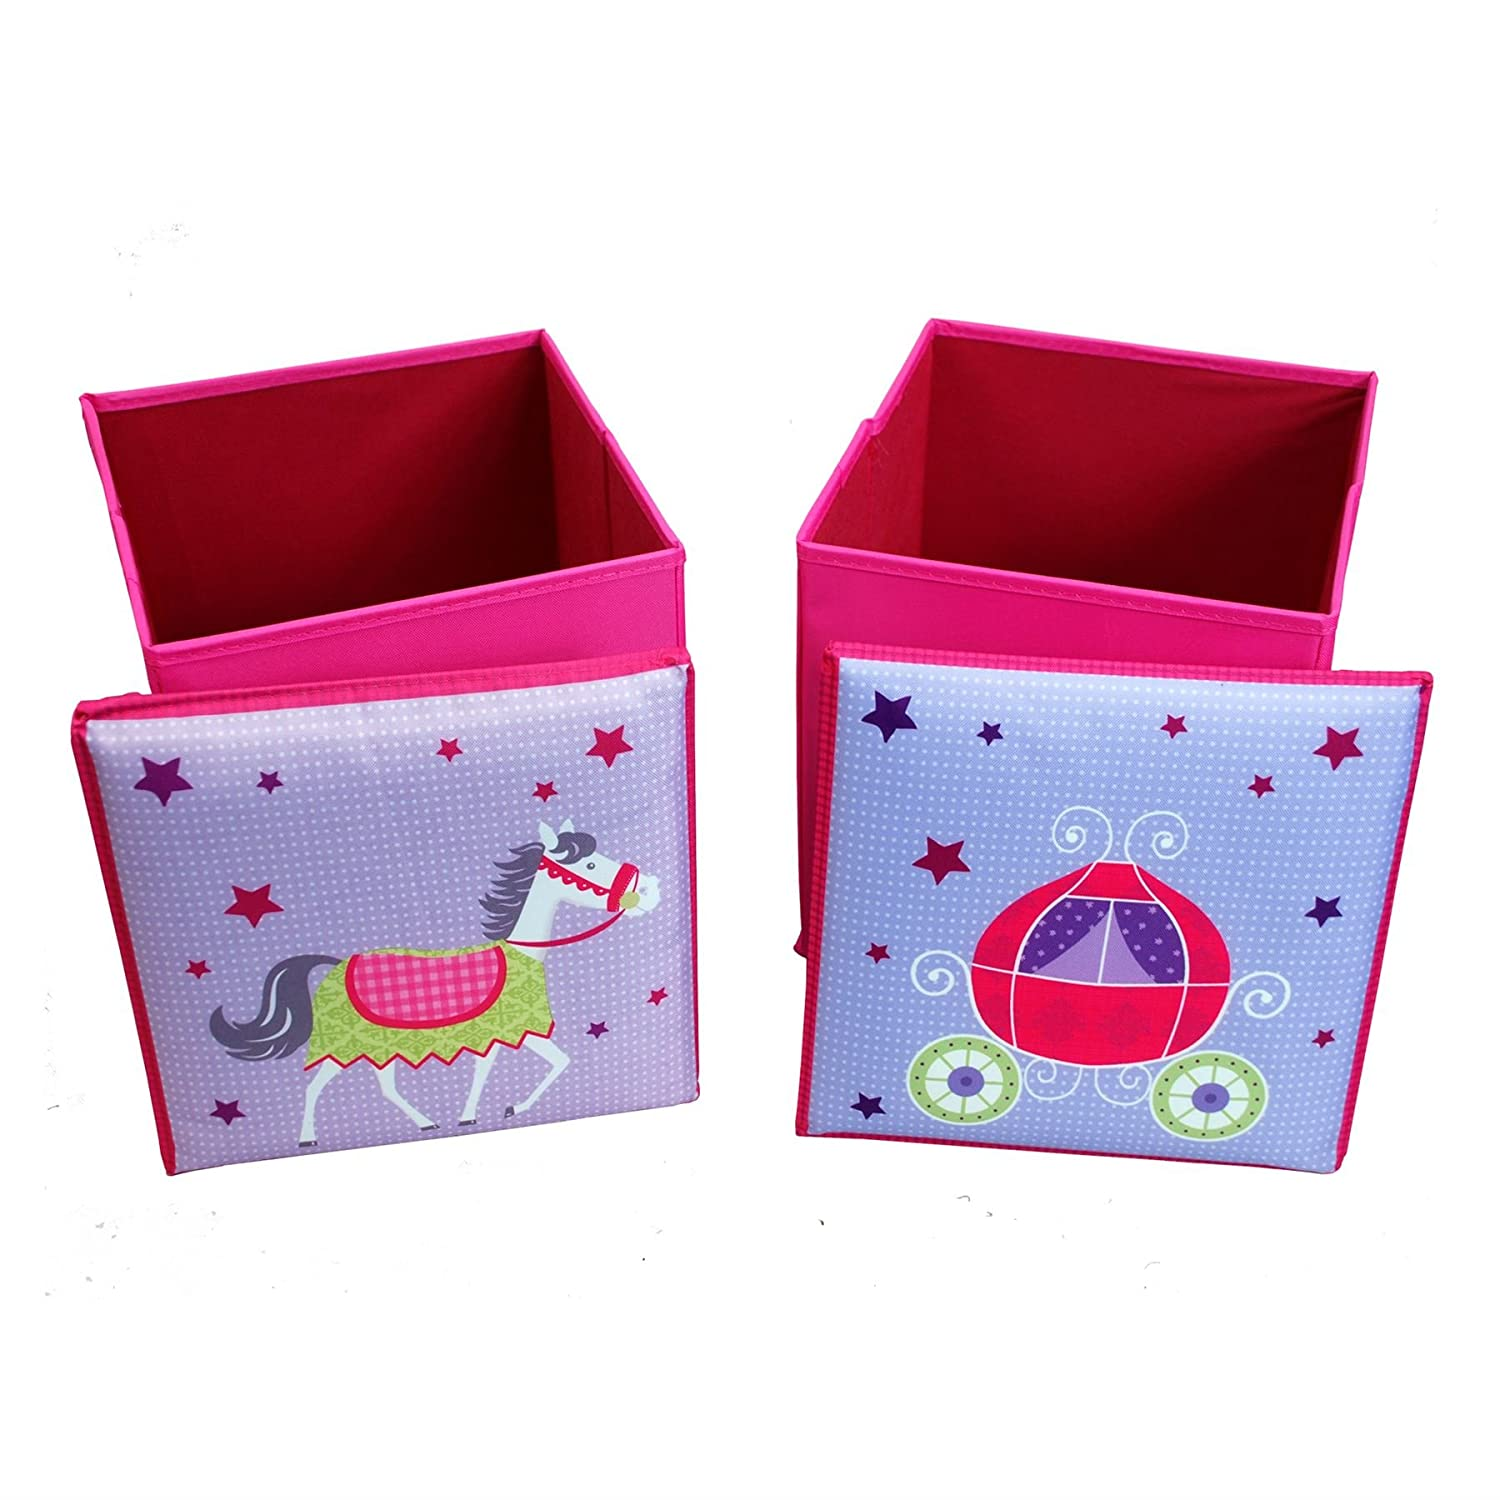 Children's Table and 2 Storage Bin Style stools Furniture Set Bright Colourful Set Flat Pack Collapsible Childs Junior Fabric Furniture (PINK) CMY